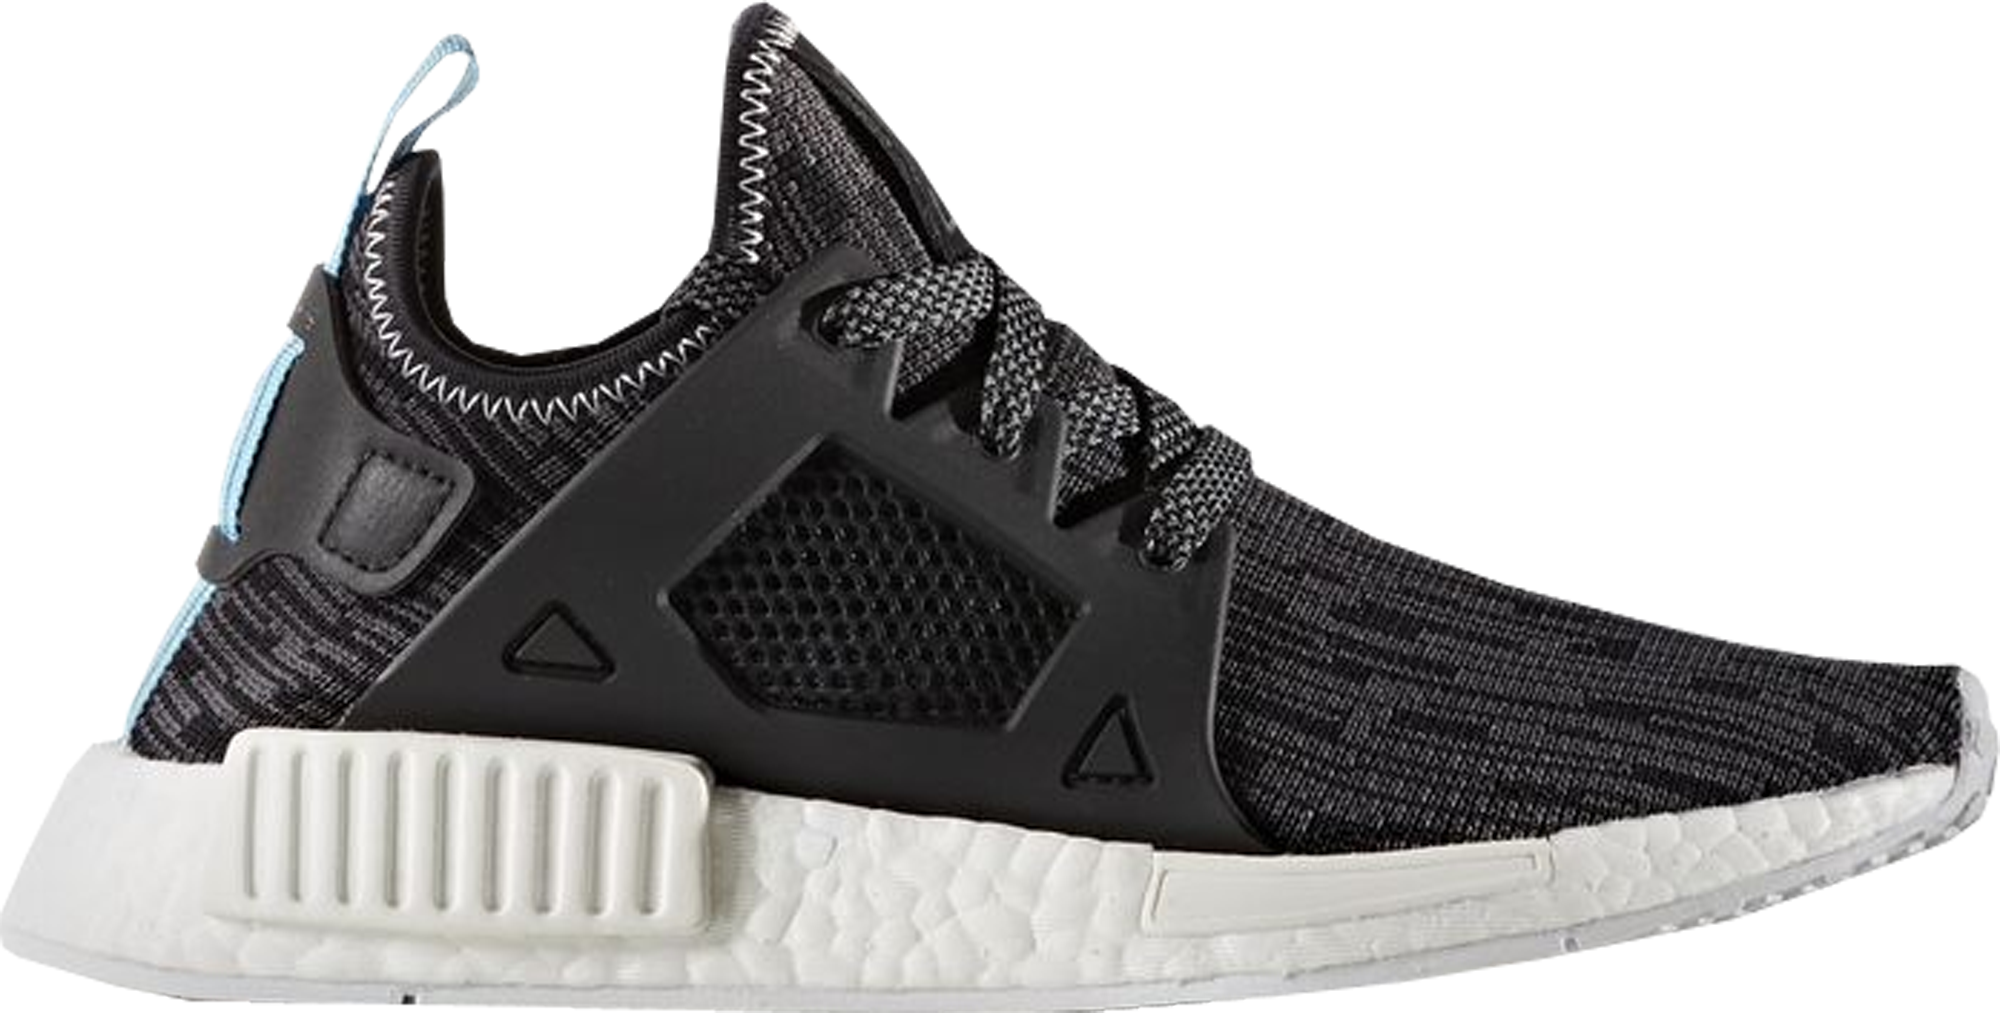 adidas NMD XR1 Blue Glitch